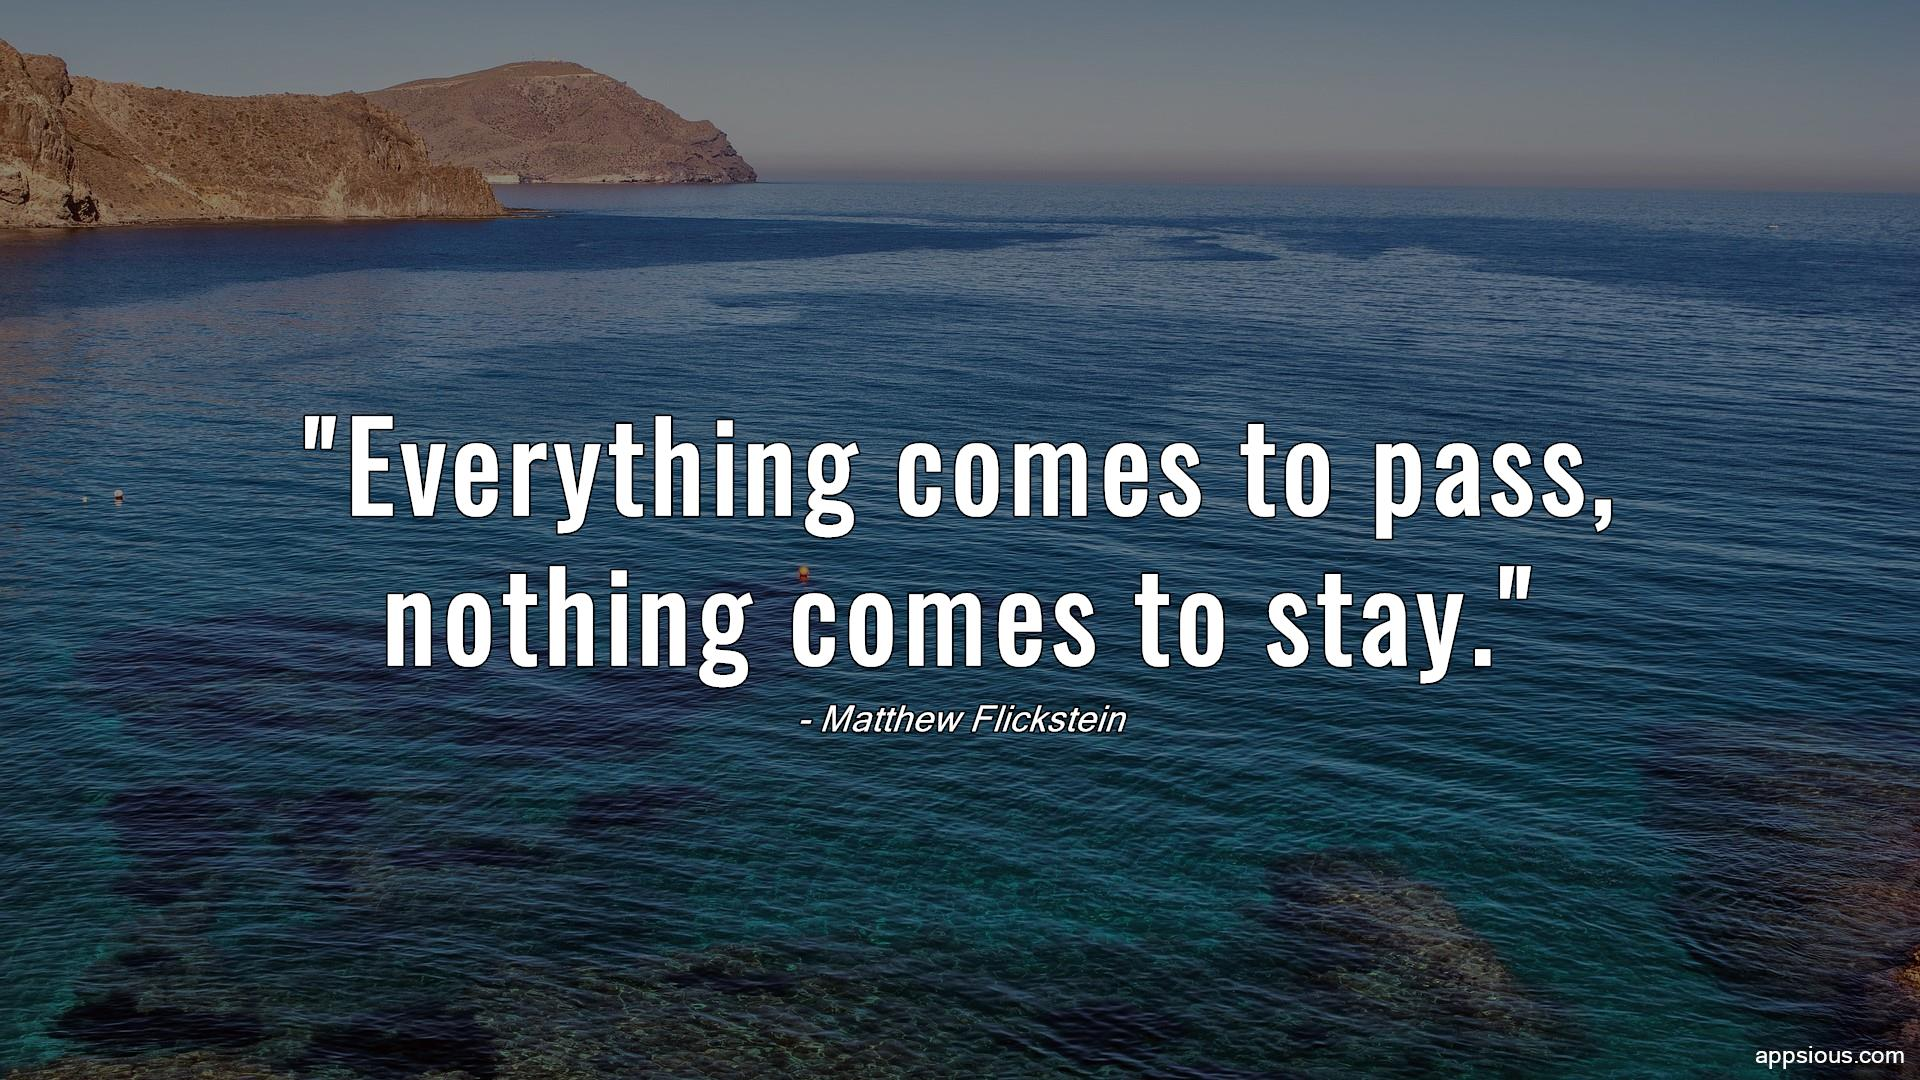 Everything comes to pass, nothing comes to stay.